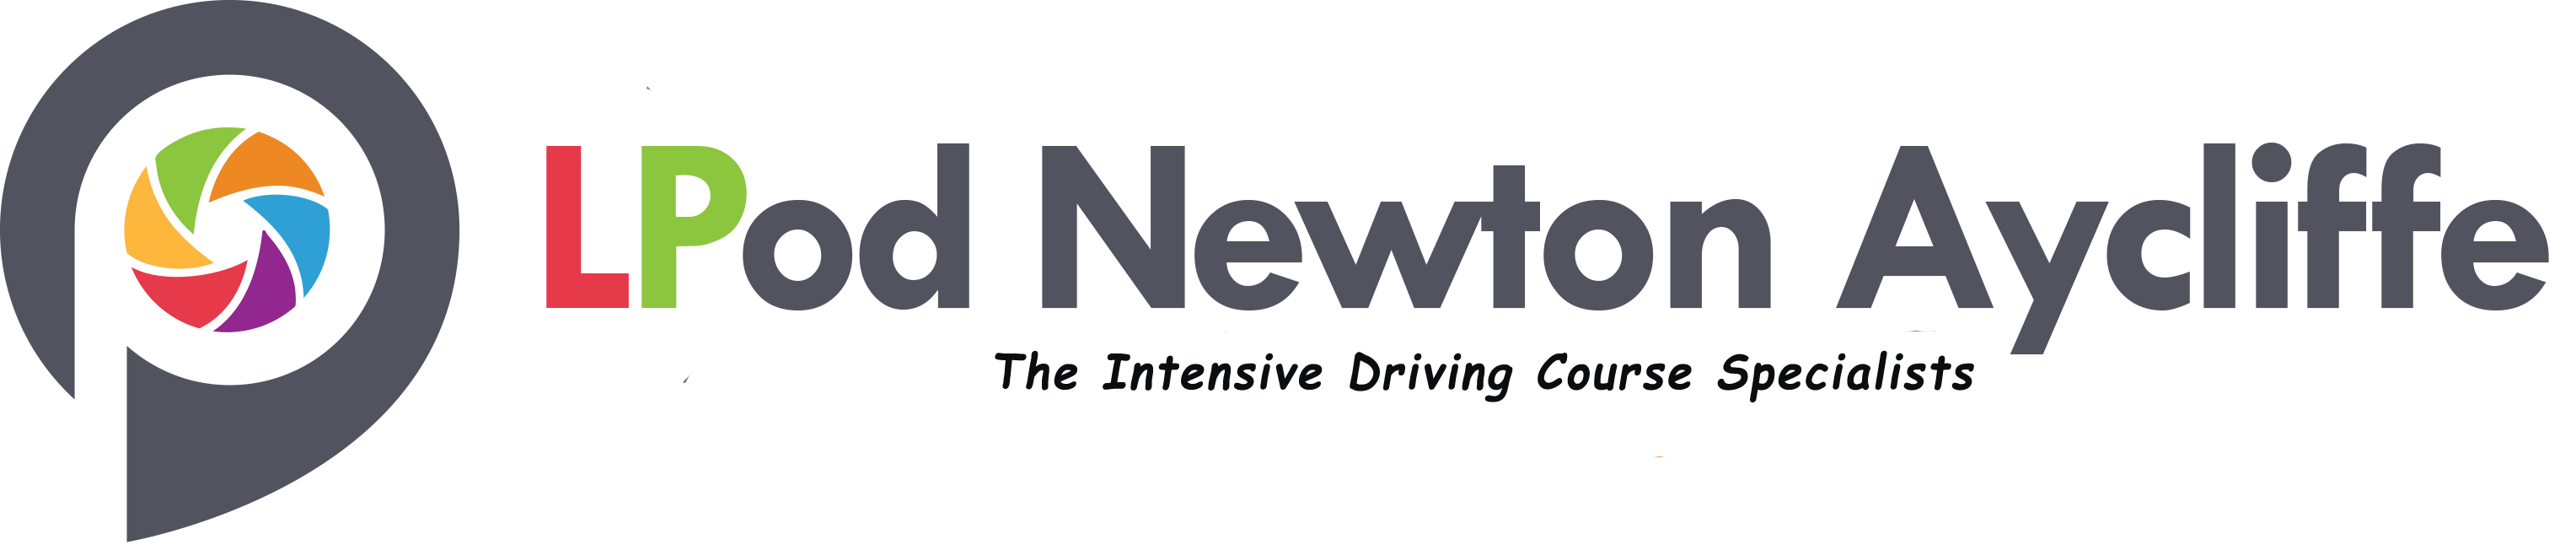 intensive driving courses Newton Aycliffe